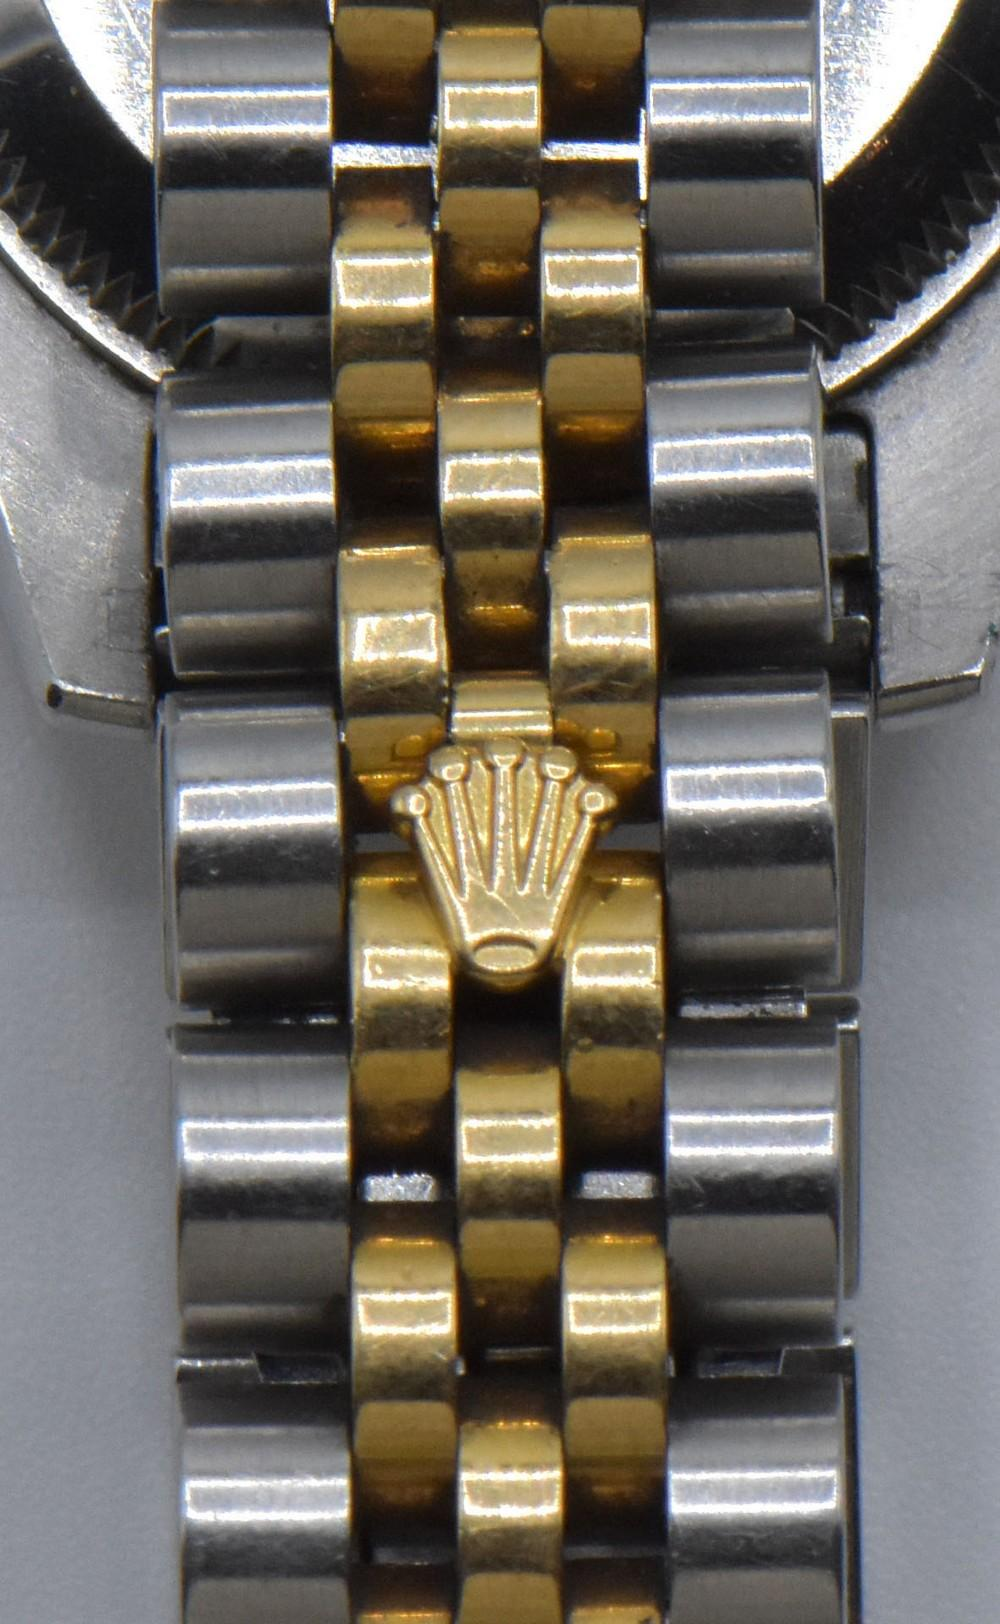 18K Gold Rolex Oyster Perpetual Watch in Box